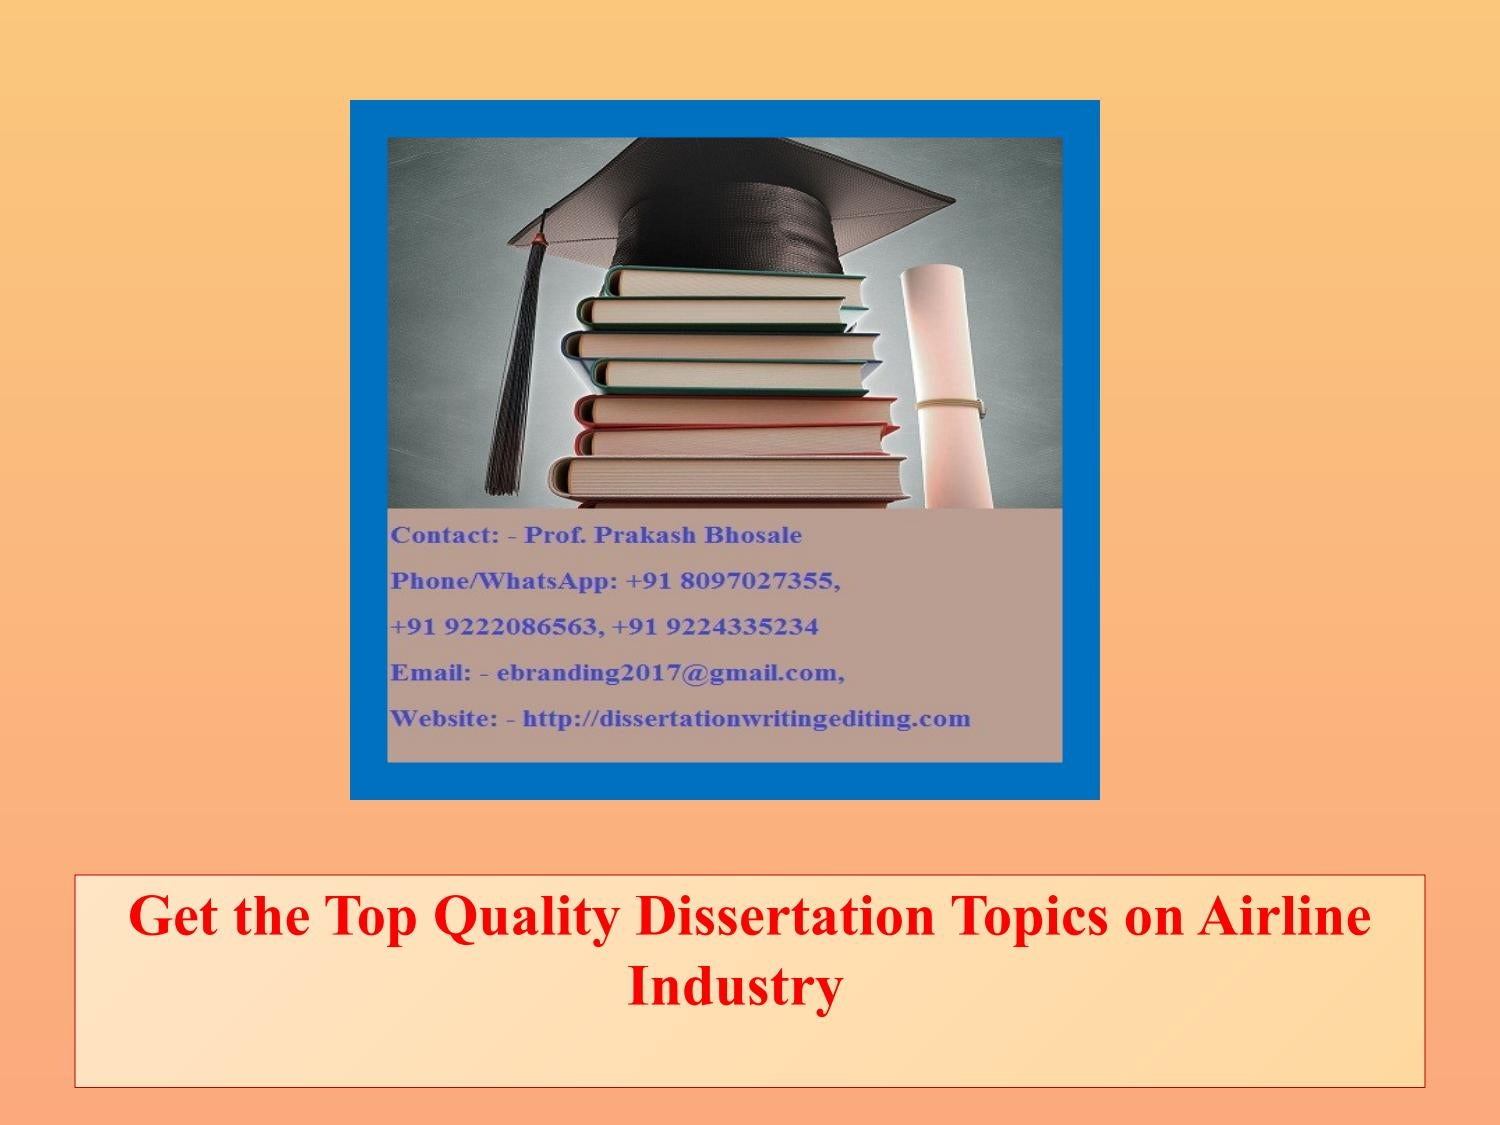 Dissertation on airline industry